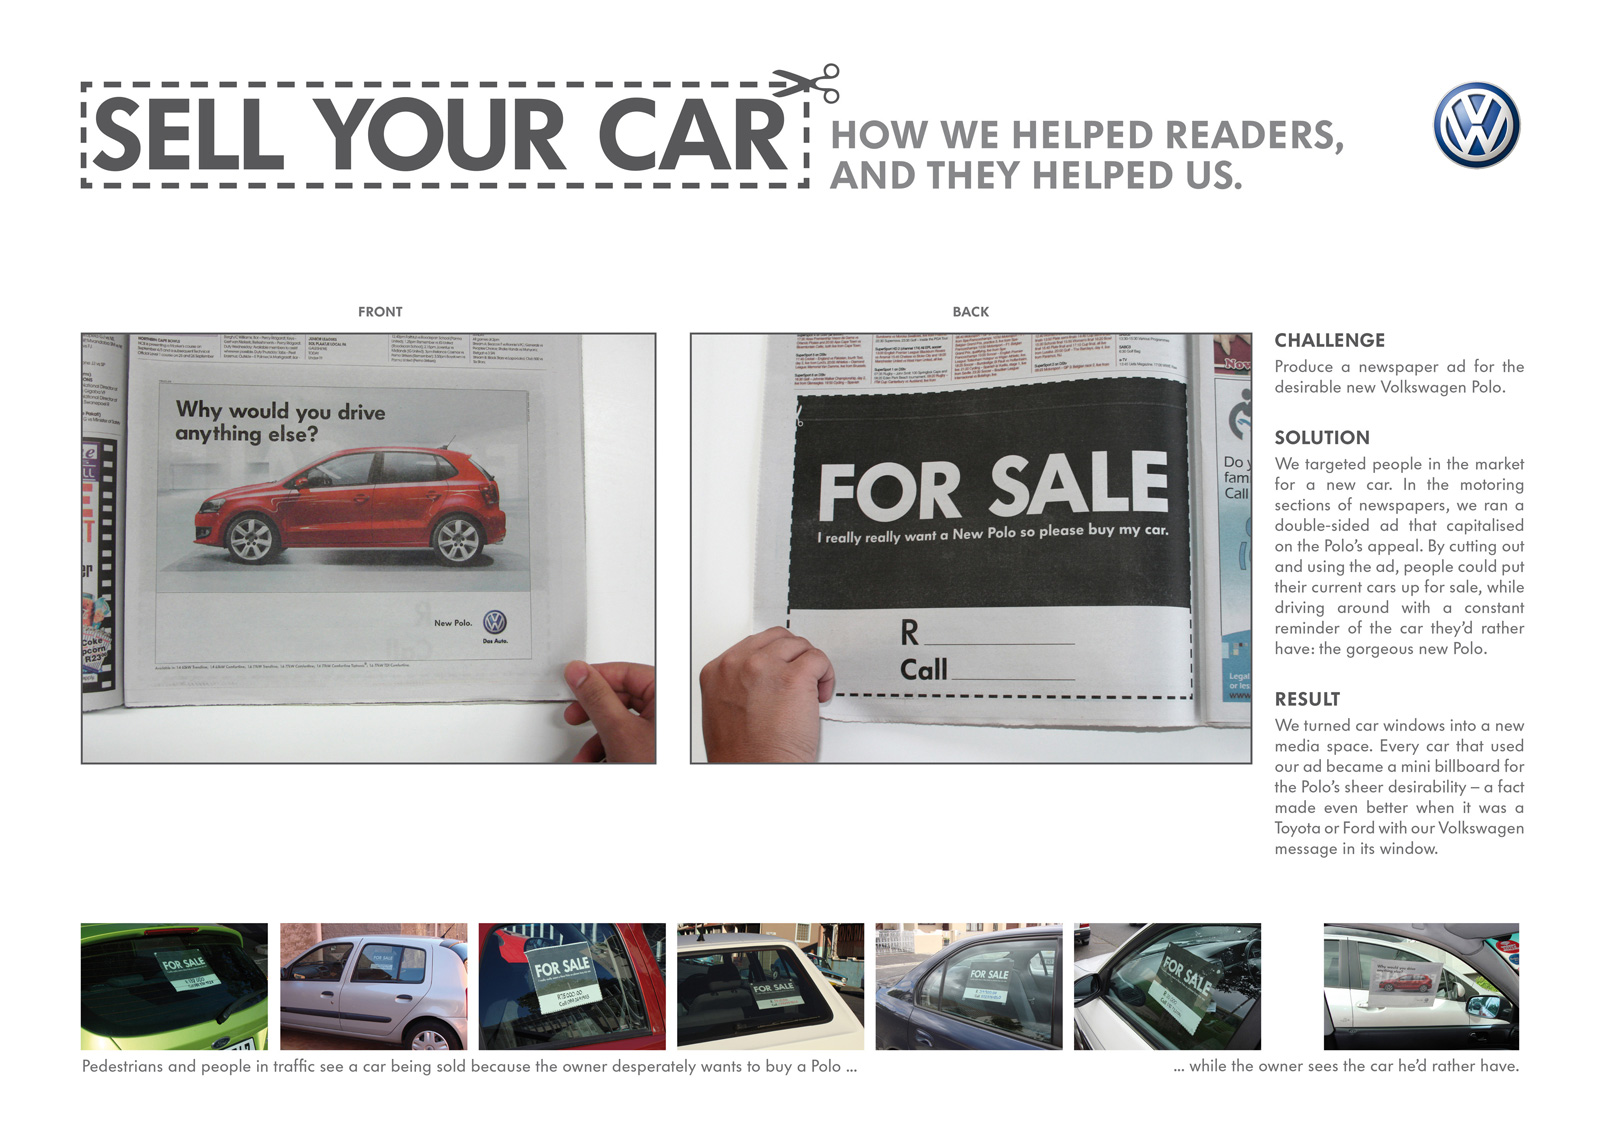 Volkswagen Print Advert By Ogilvy: Sell Your Car | Ads of the World™